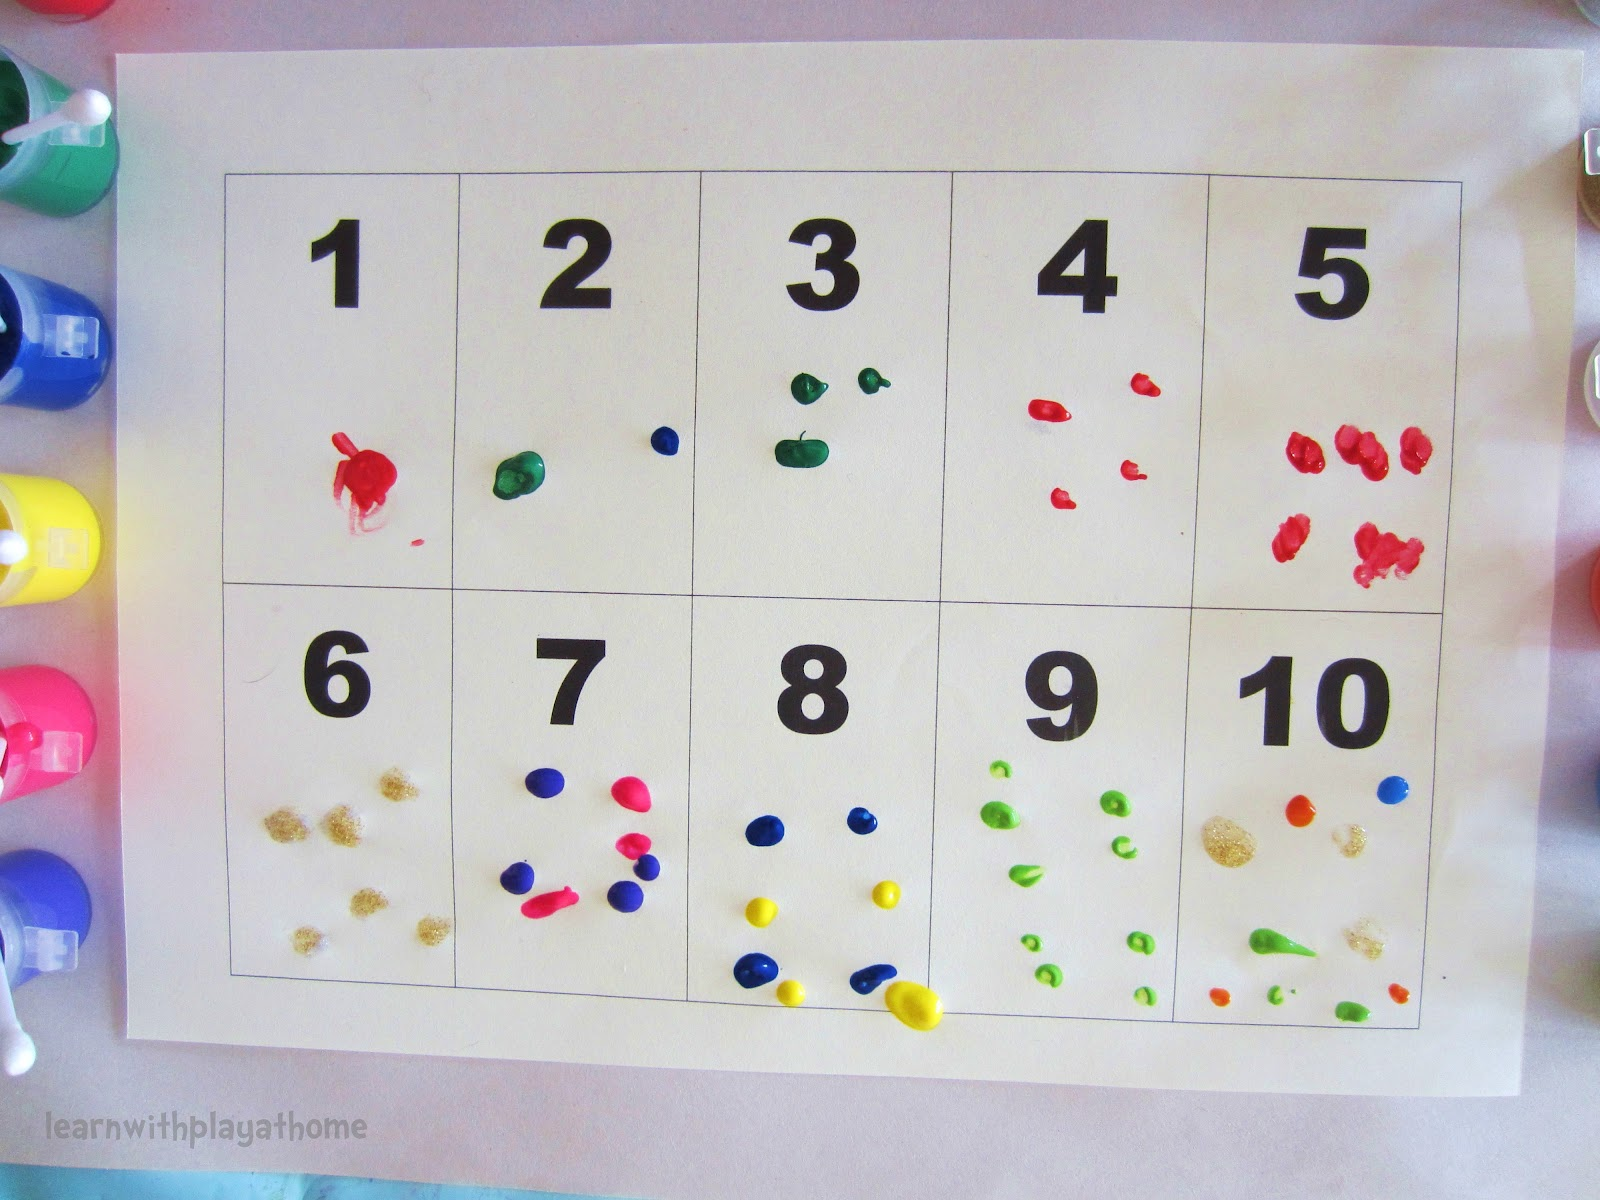 Learn With Play At Home Q Tip Cottonbud Painting Learning Numbers